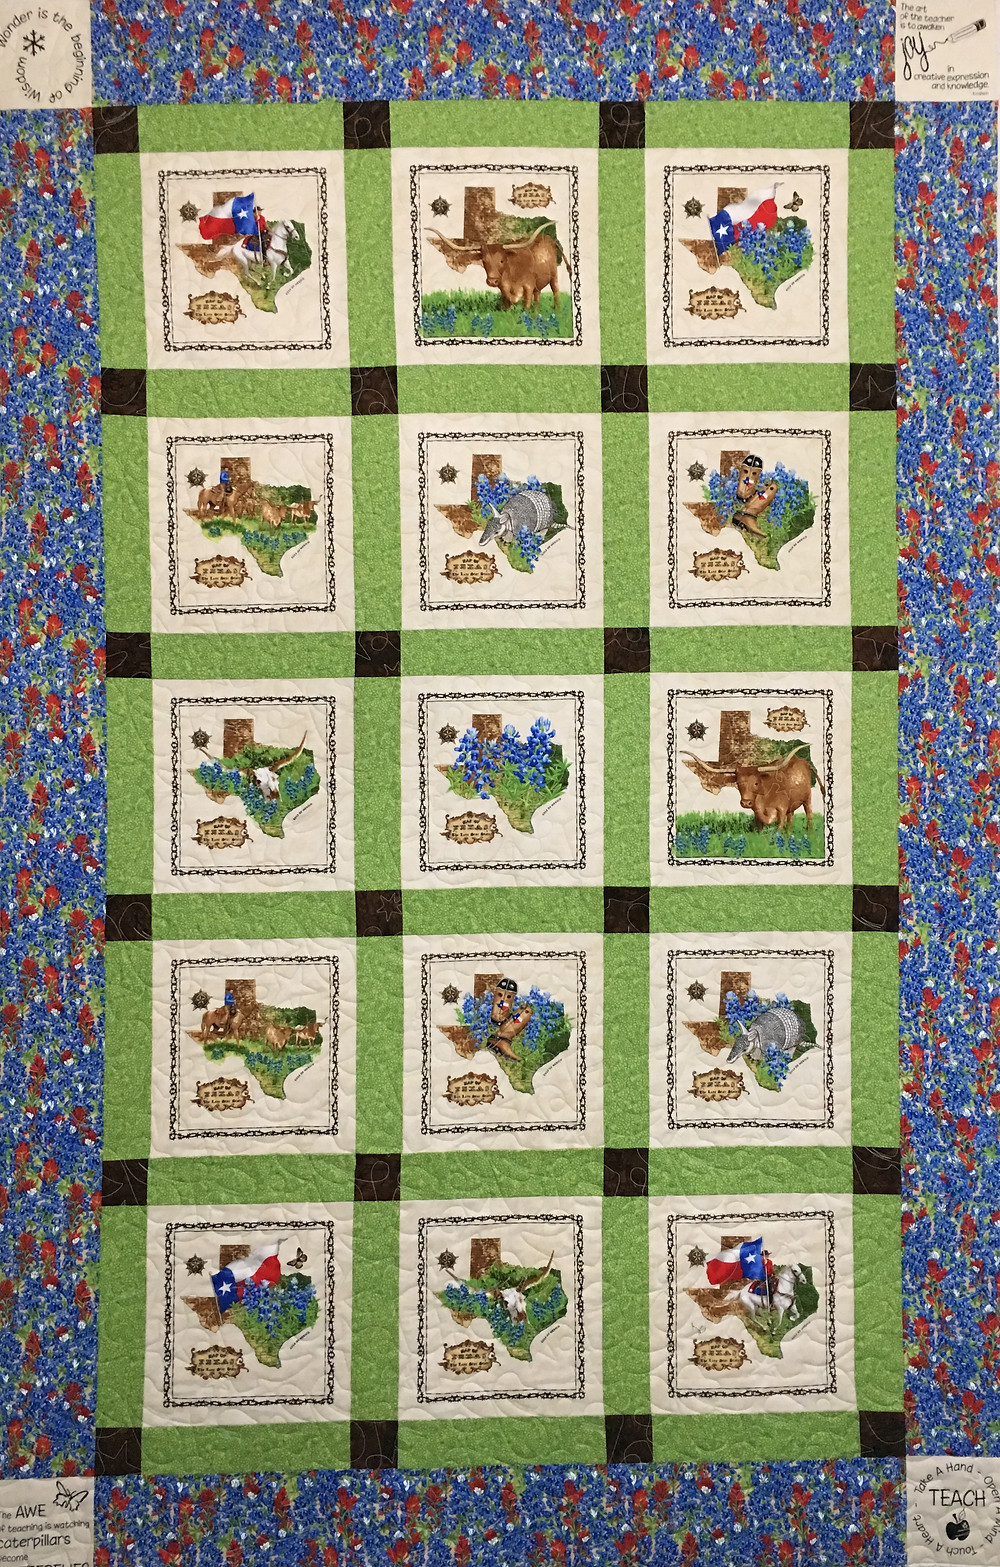 Delia's Retirement Quilt by Debbie Seitz